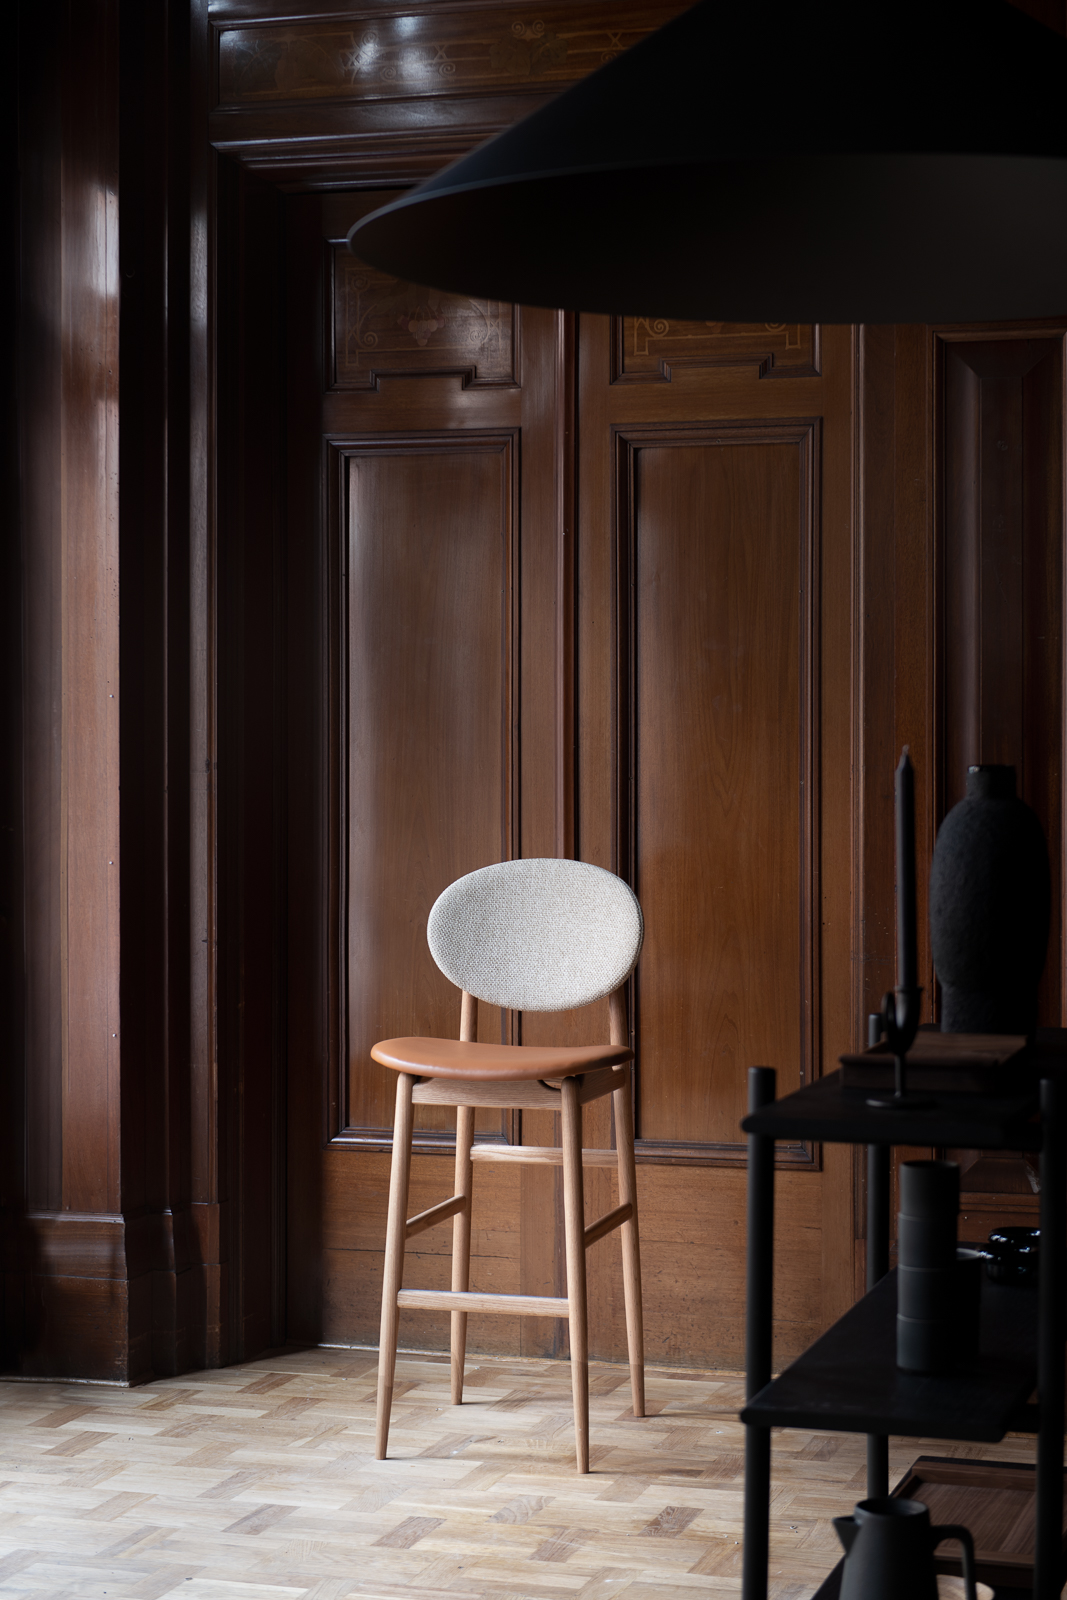 The Outline Barstool by Norm Architects